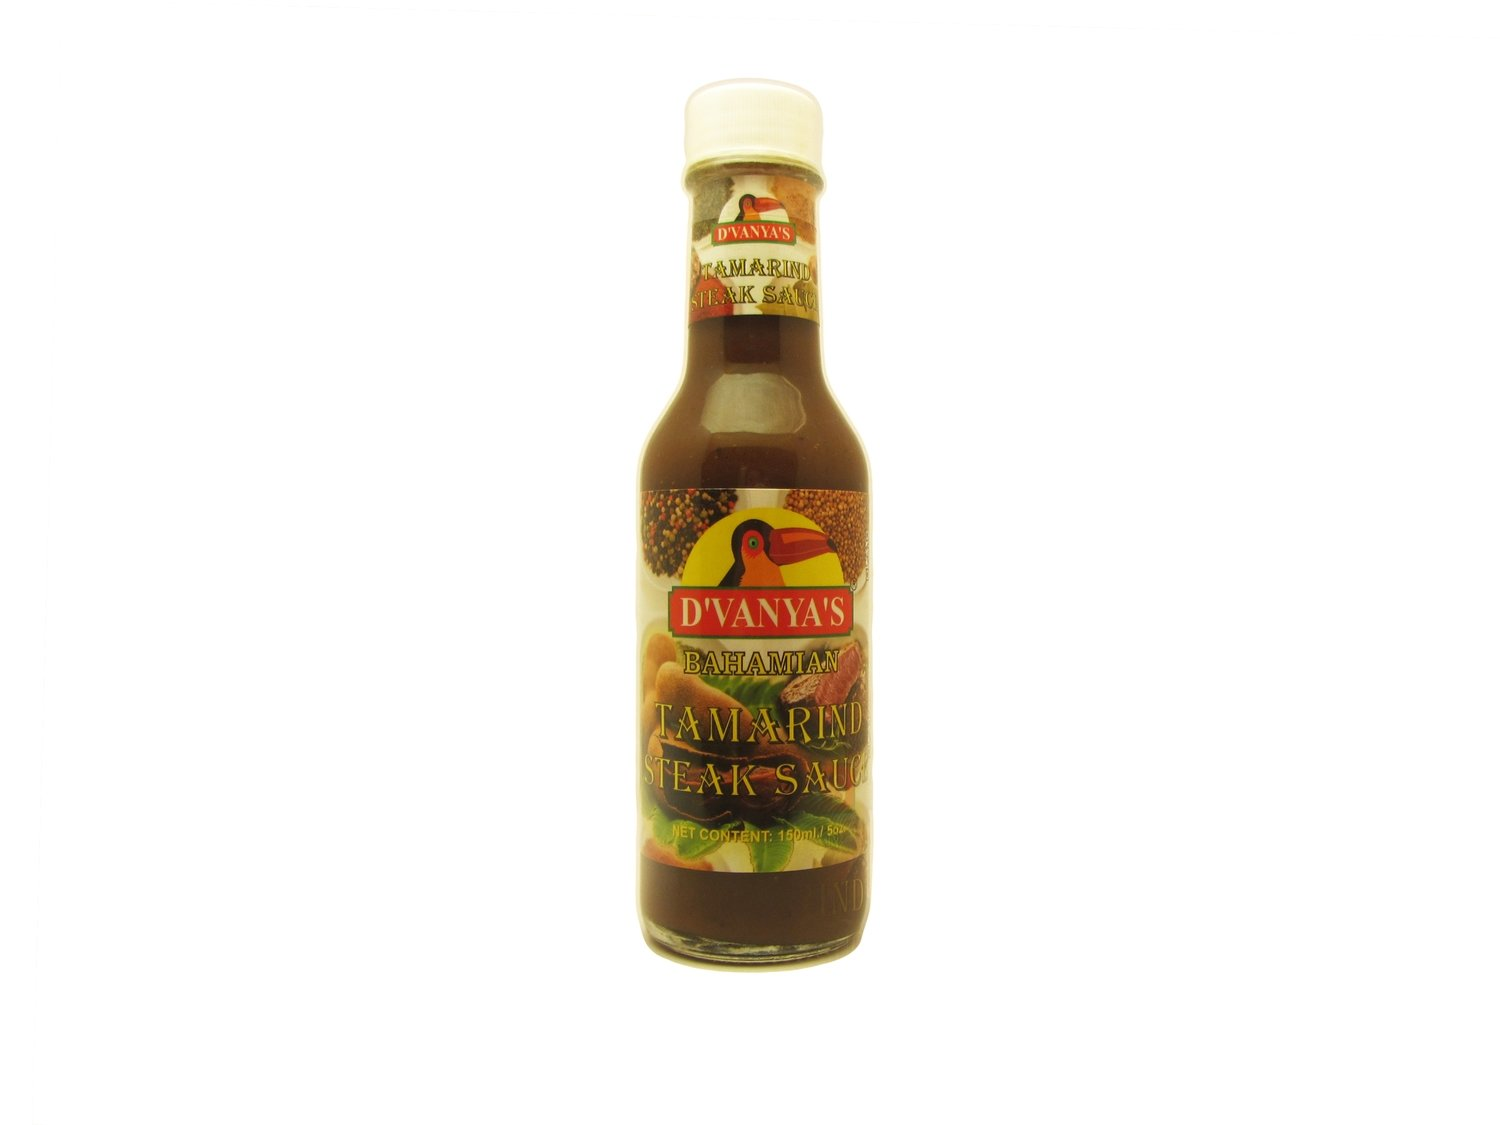 Tamarind Steak Sauce - 5oz